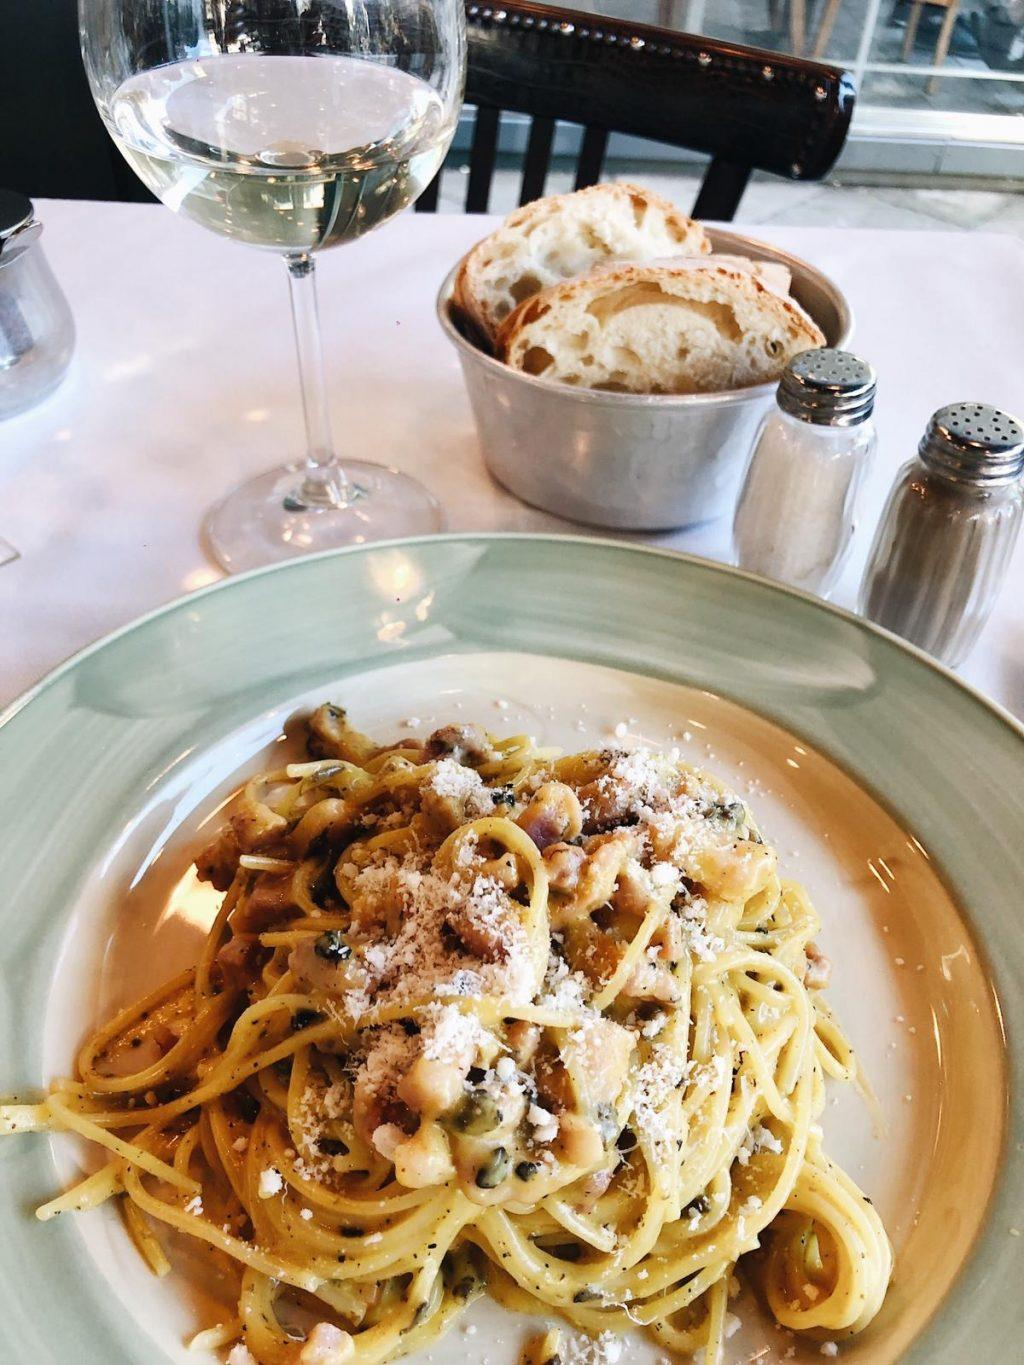 Camryn Moss' favorite meal from Trattoria Za Za, a restaurant in Florence, is spaghetti carbonara with truffle. Photo courtesy of Camryn Moss.